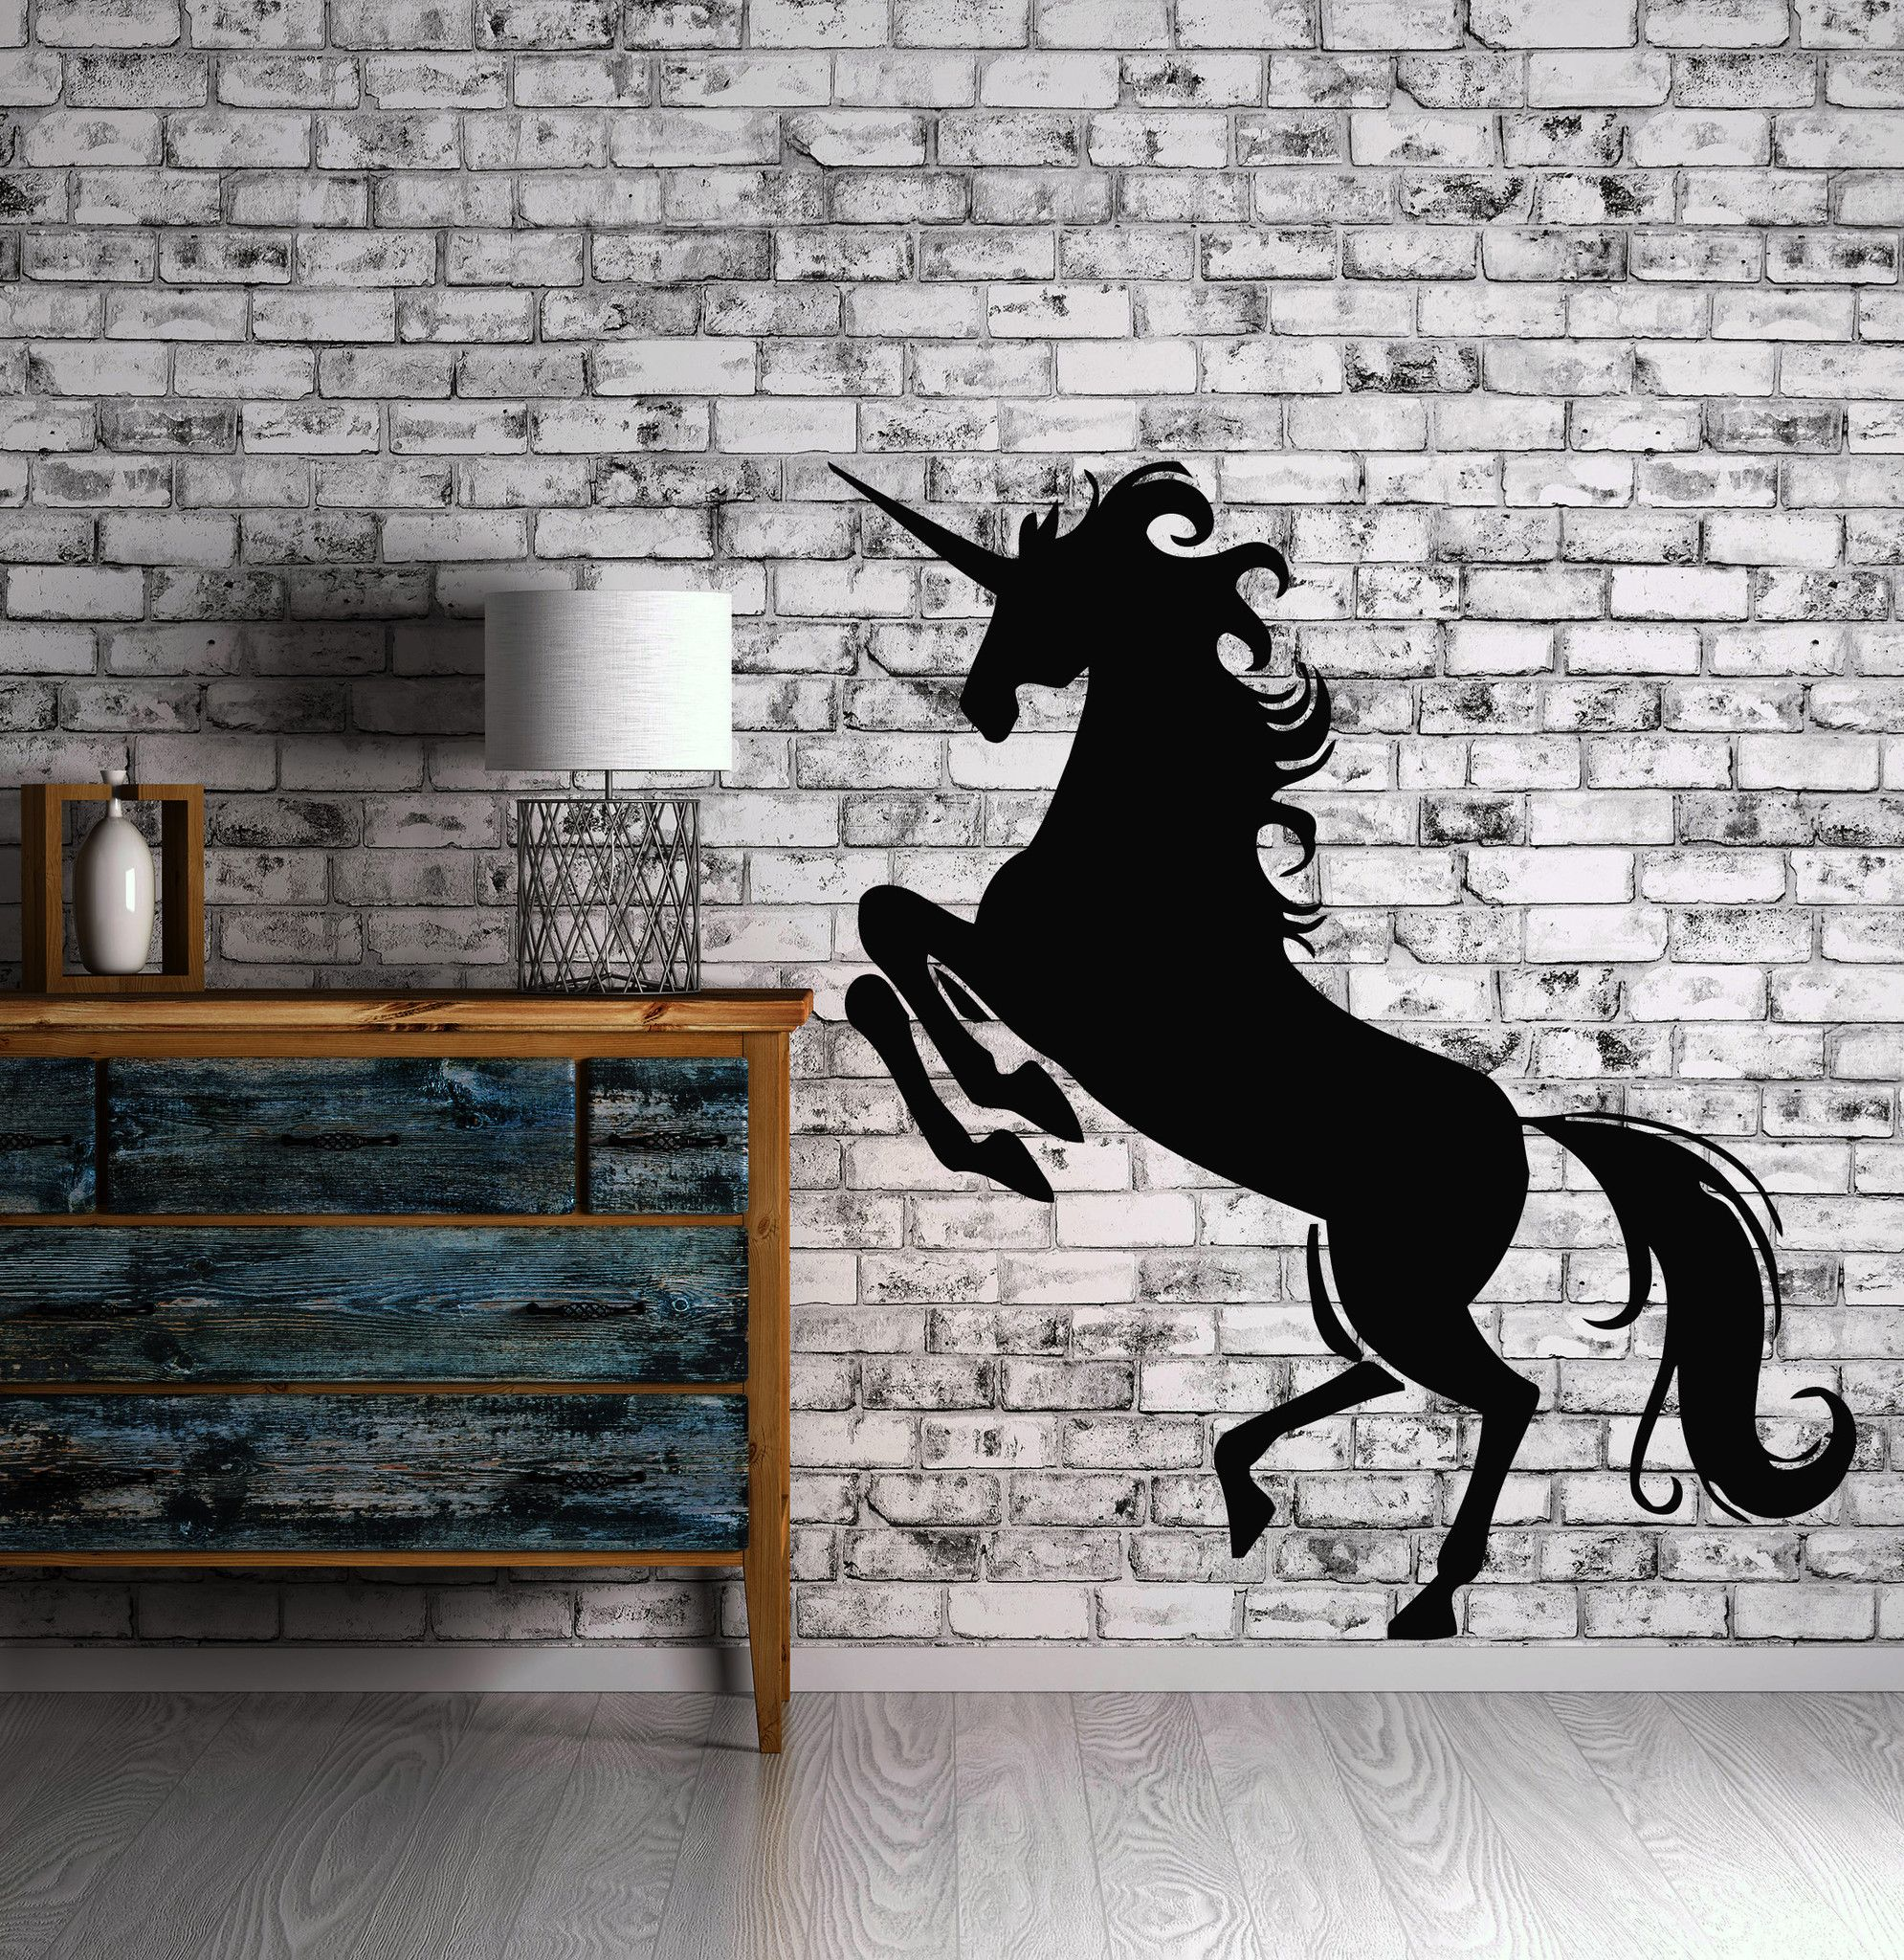 Heraldy middle ages animal unicorn wall art decor vinyl sticker z